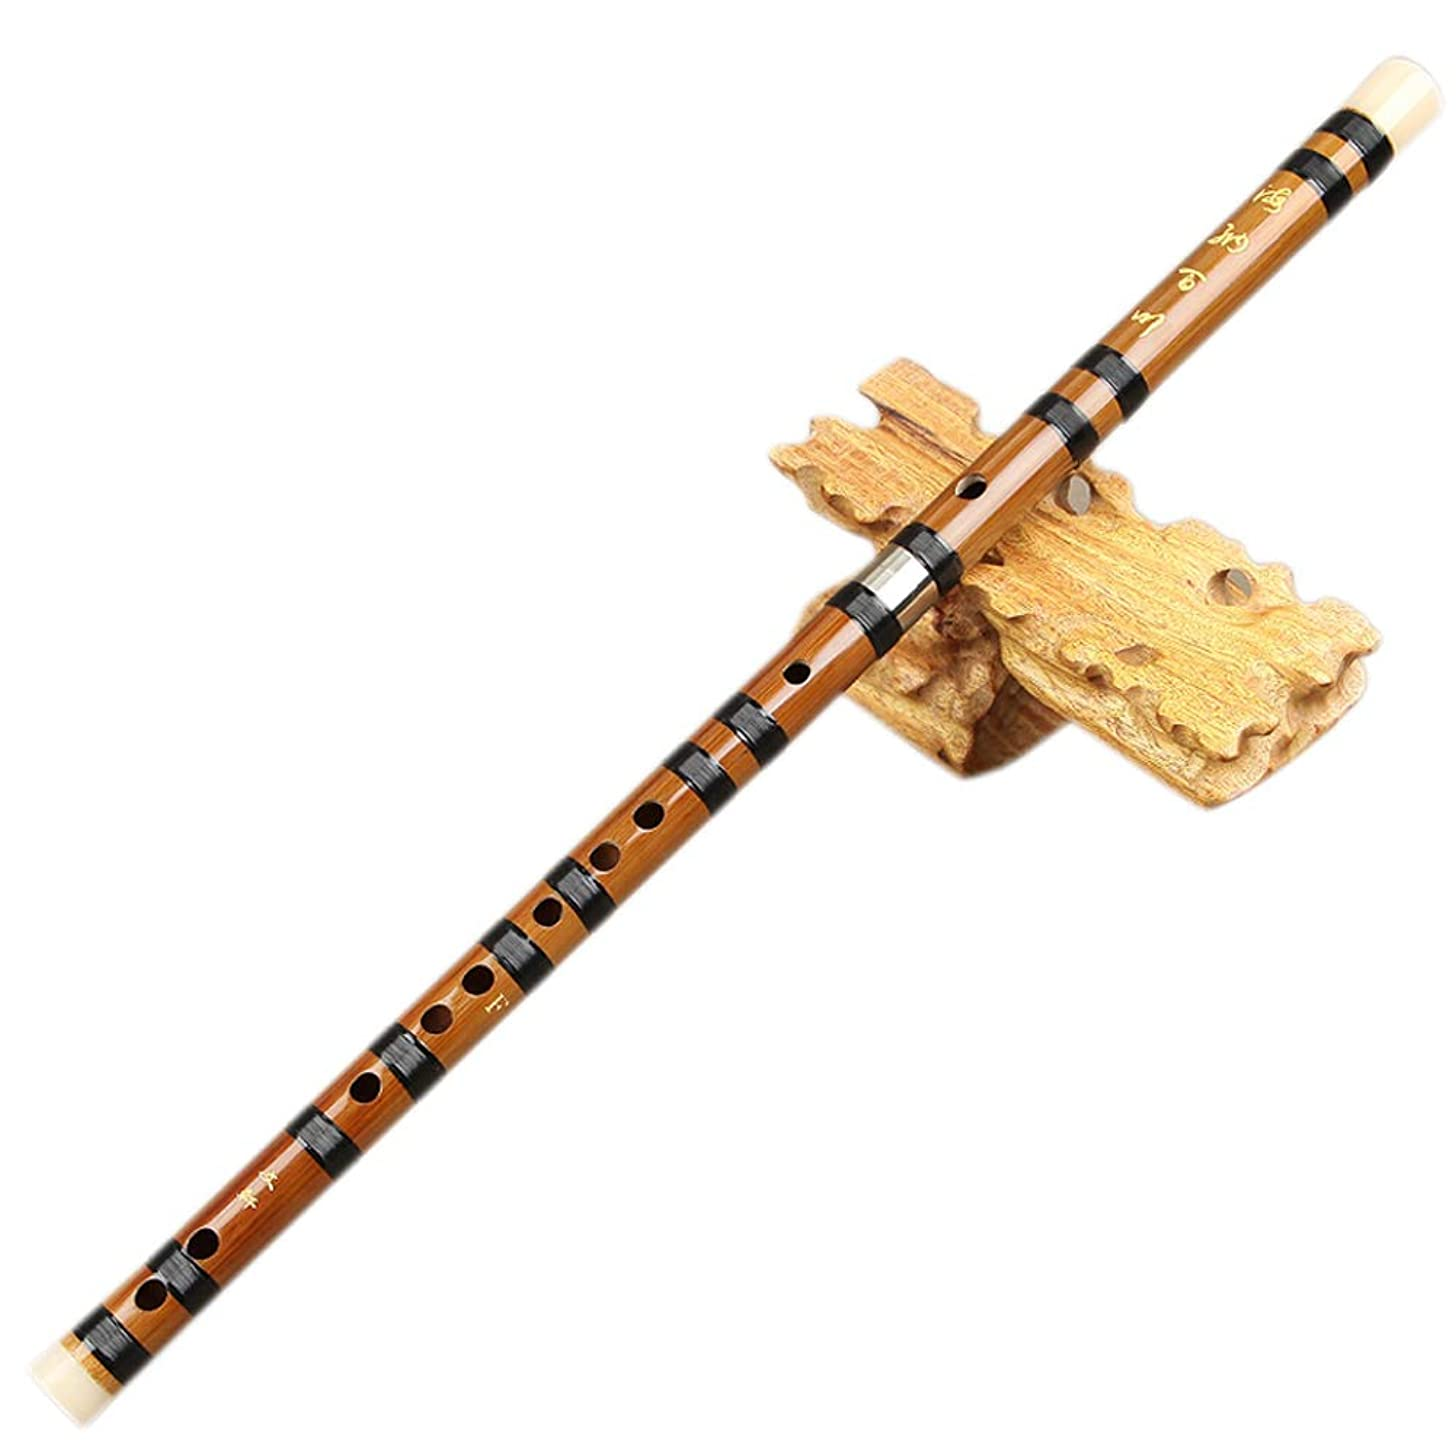 Guanso Bamboo Flute Separable Brass Single Insertion C,D,E,F,G Key Professional Tuning 4 Years or More Drying Treatment for Beginner (Color : C Key)